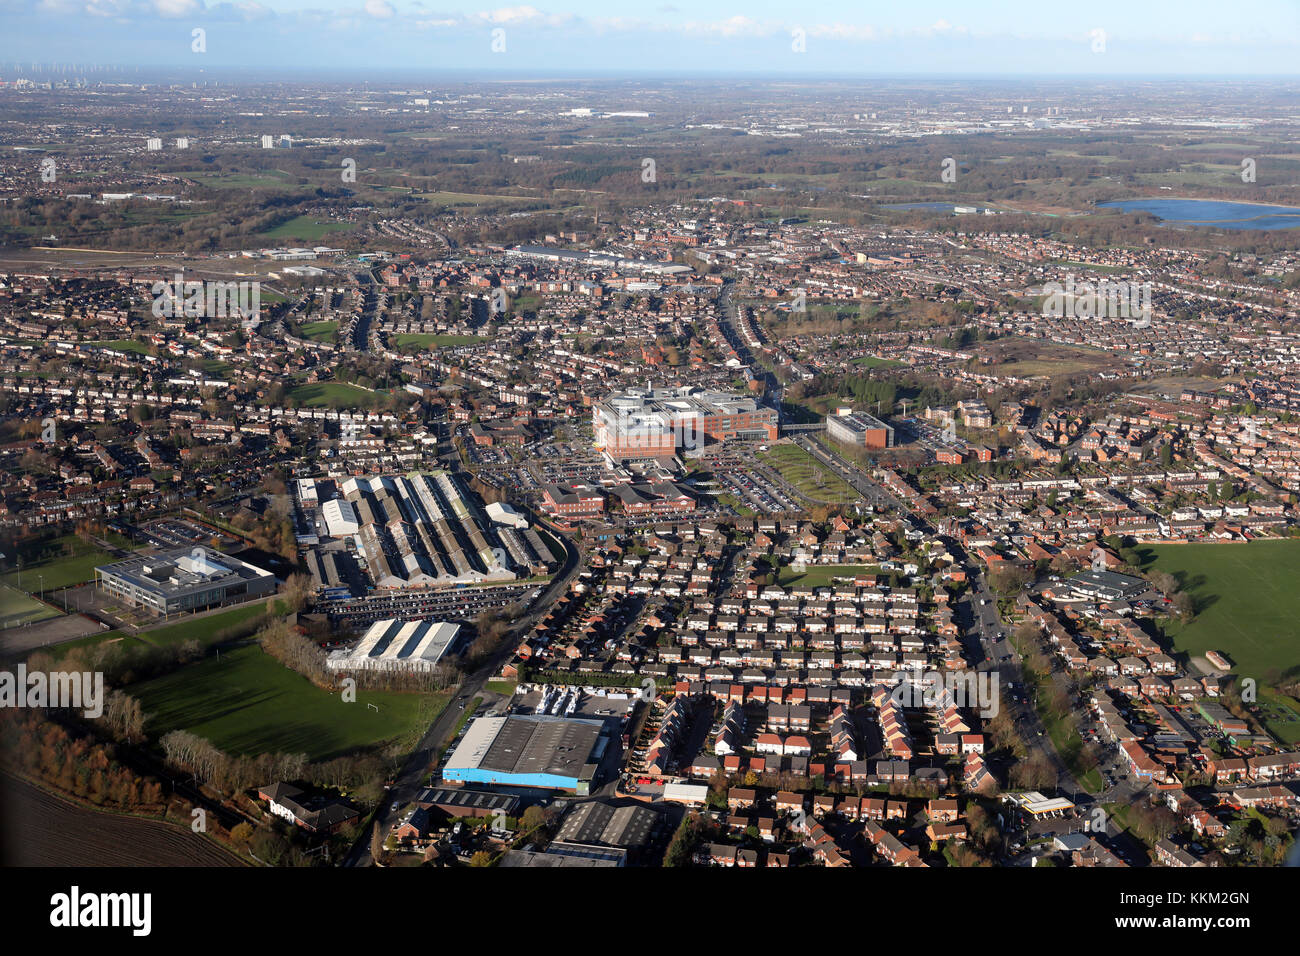 aerial view of Whiston in Lancashire, UK - Stock Image